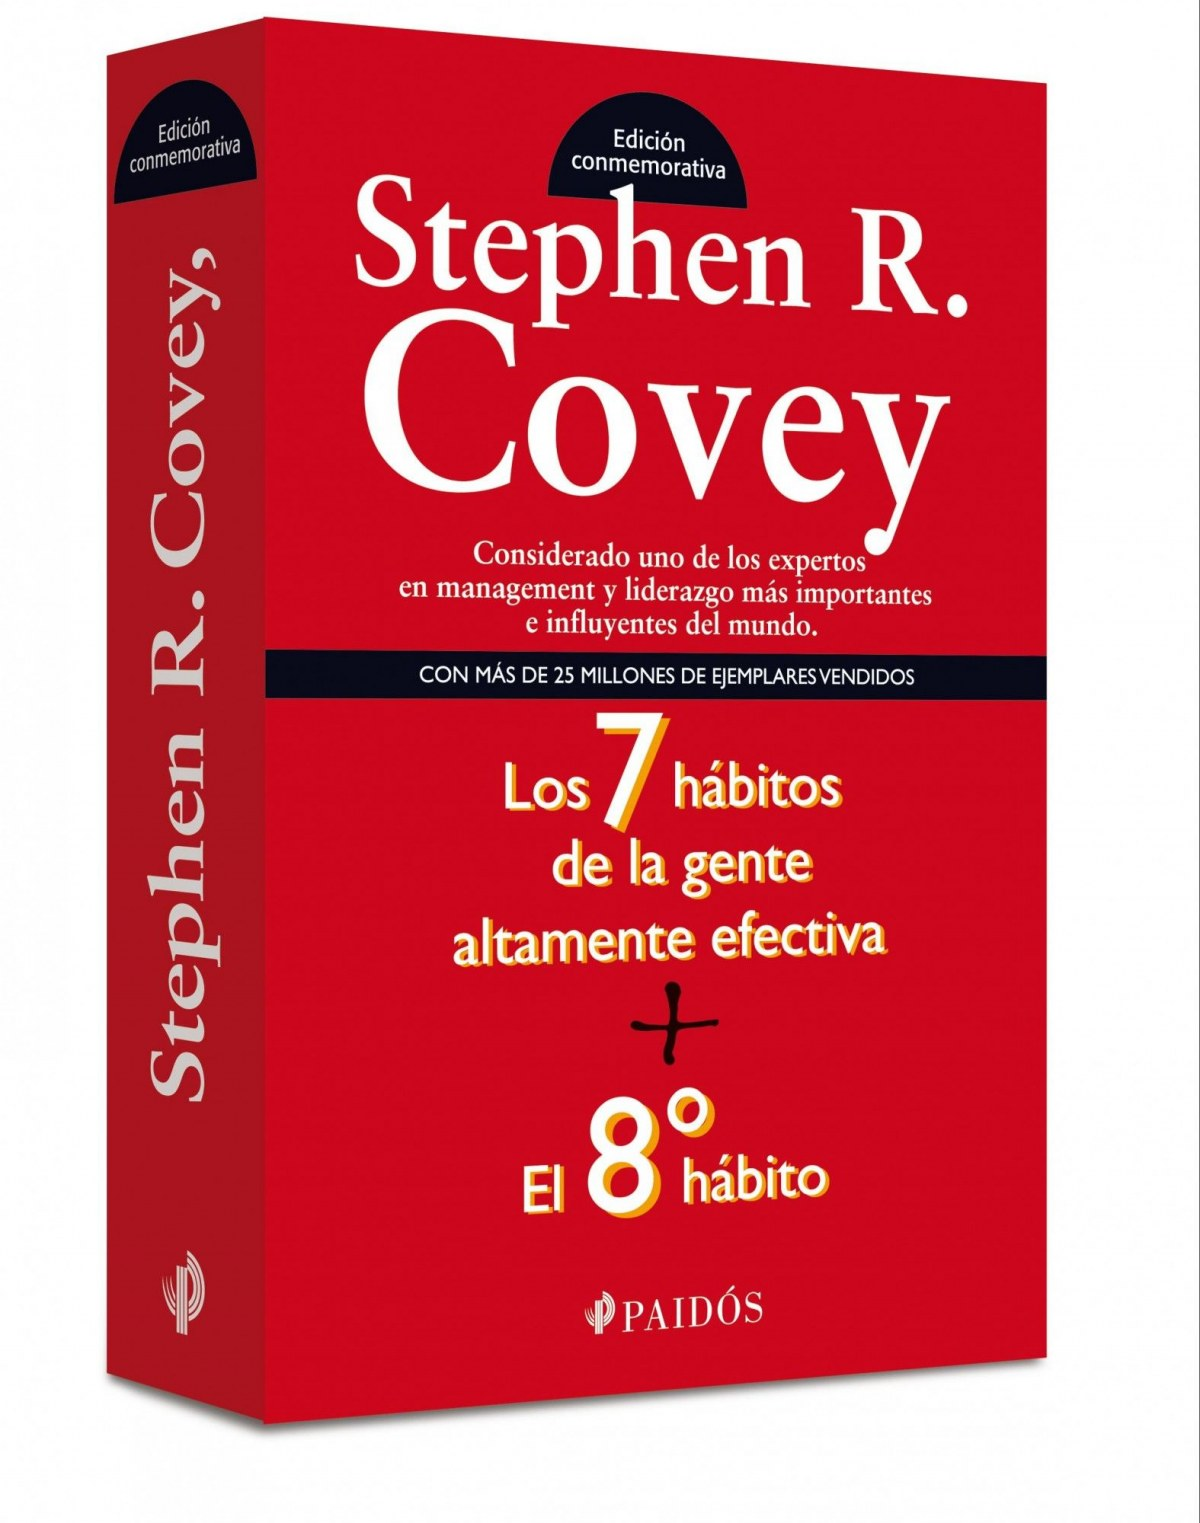 Pack conmemorativo stephen r. covey